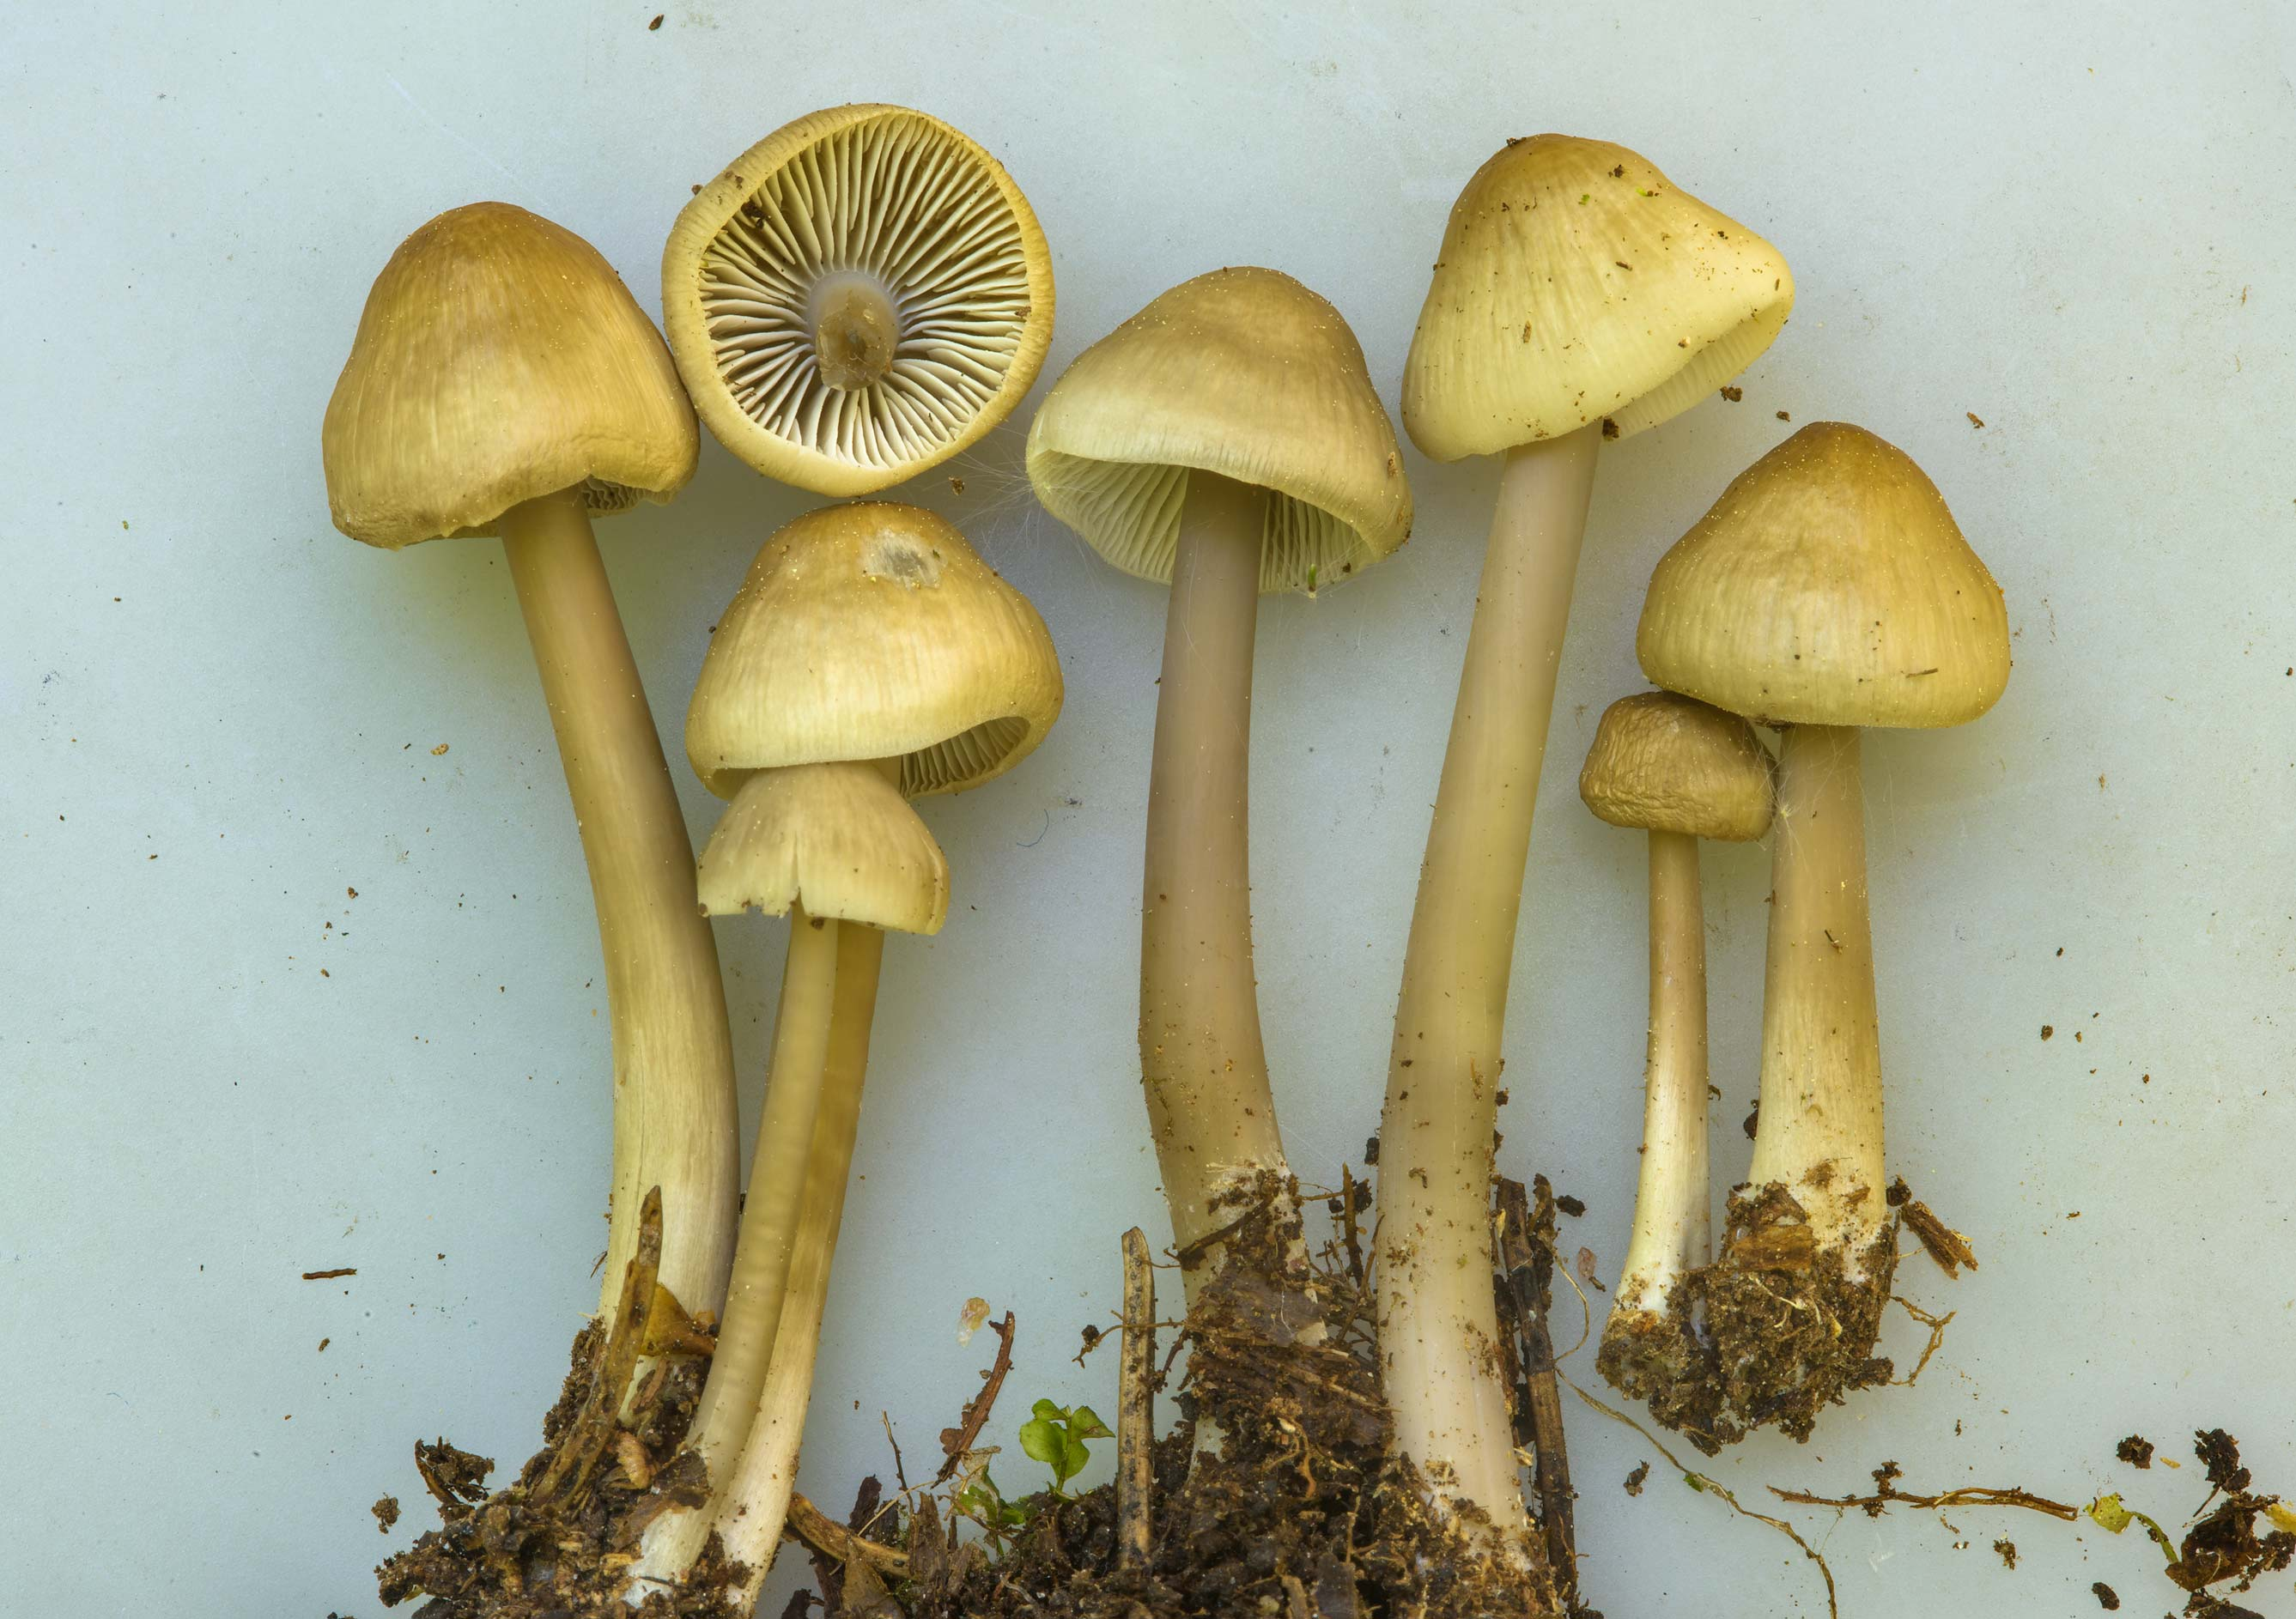 Close up of common bonnet mushrooms (Mycena...north from St.Petersburg, Russia